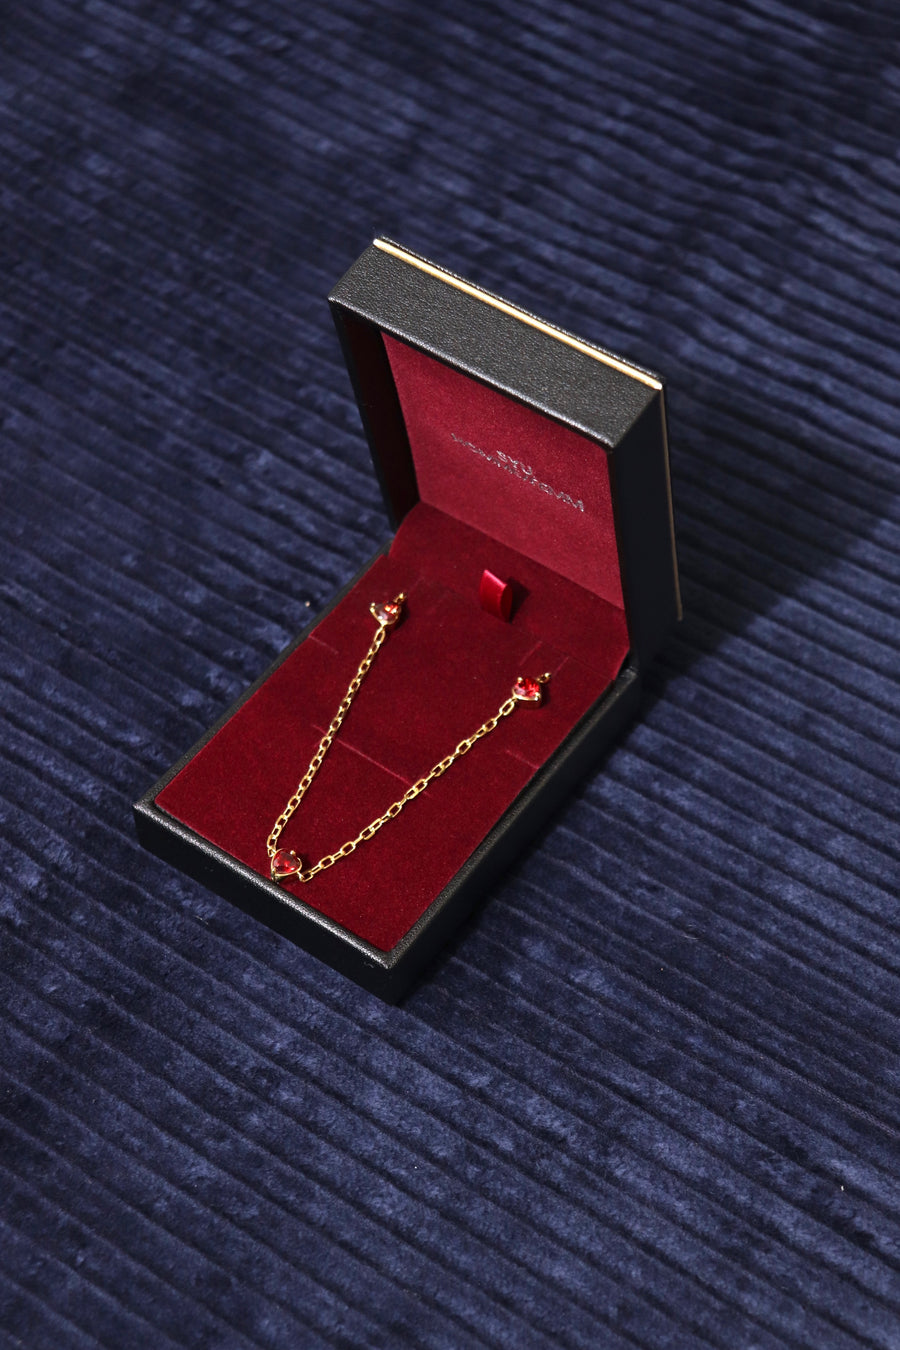 SYU.HOMME/FEMM  Love chain necklace(Gold)